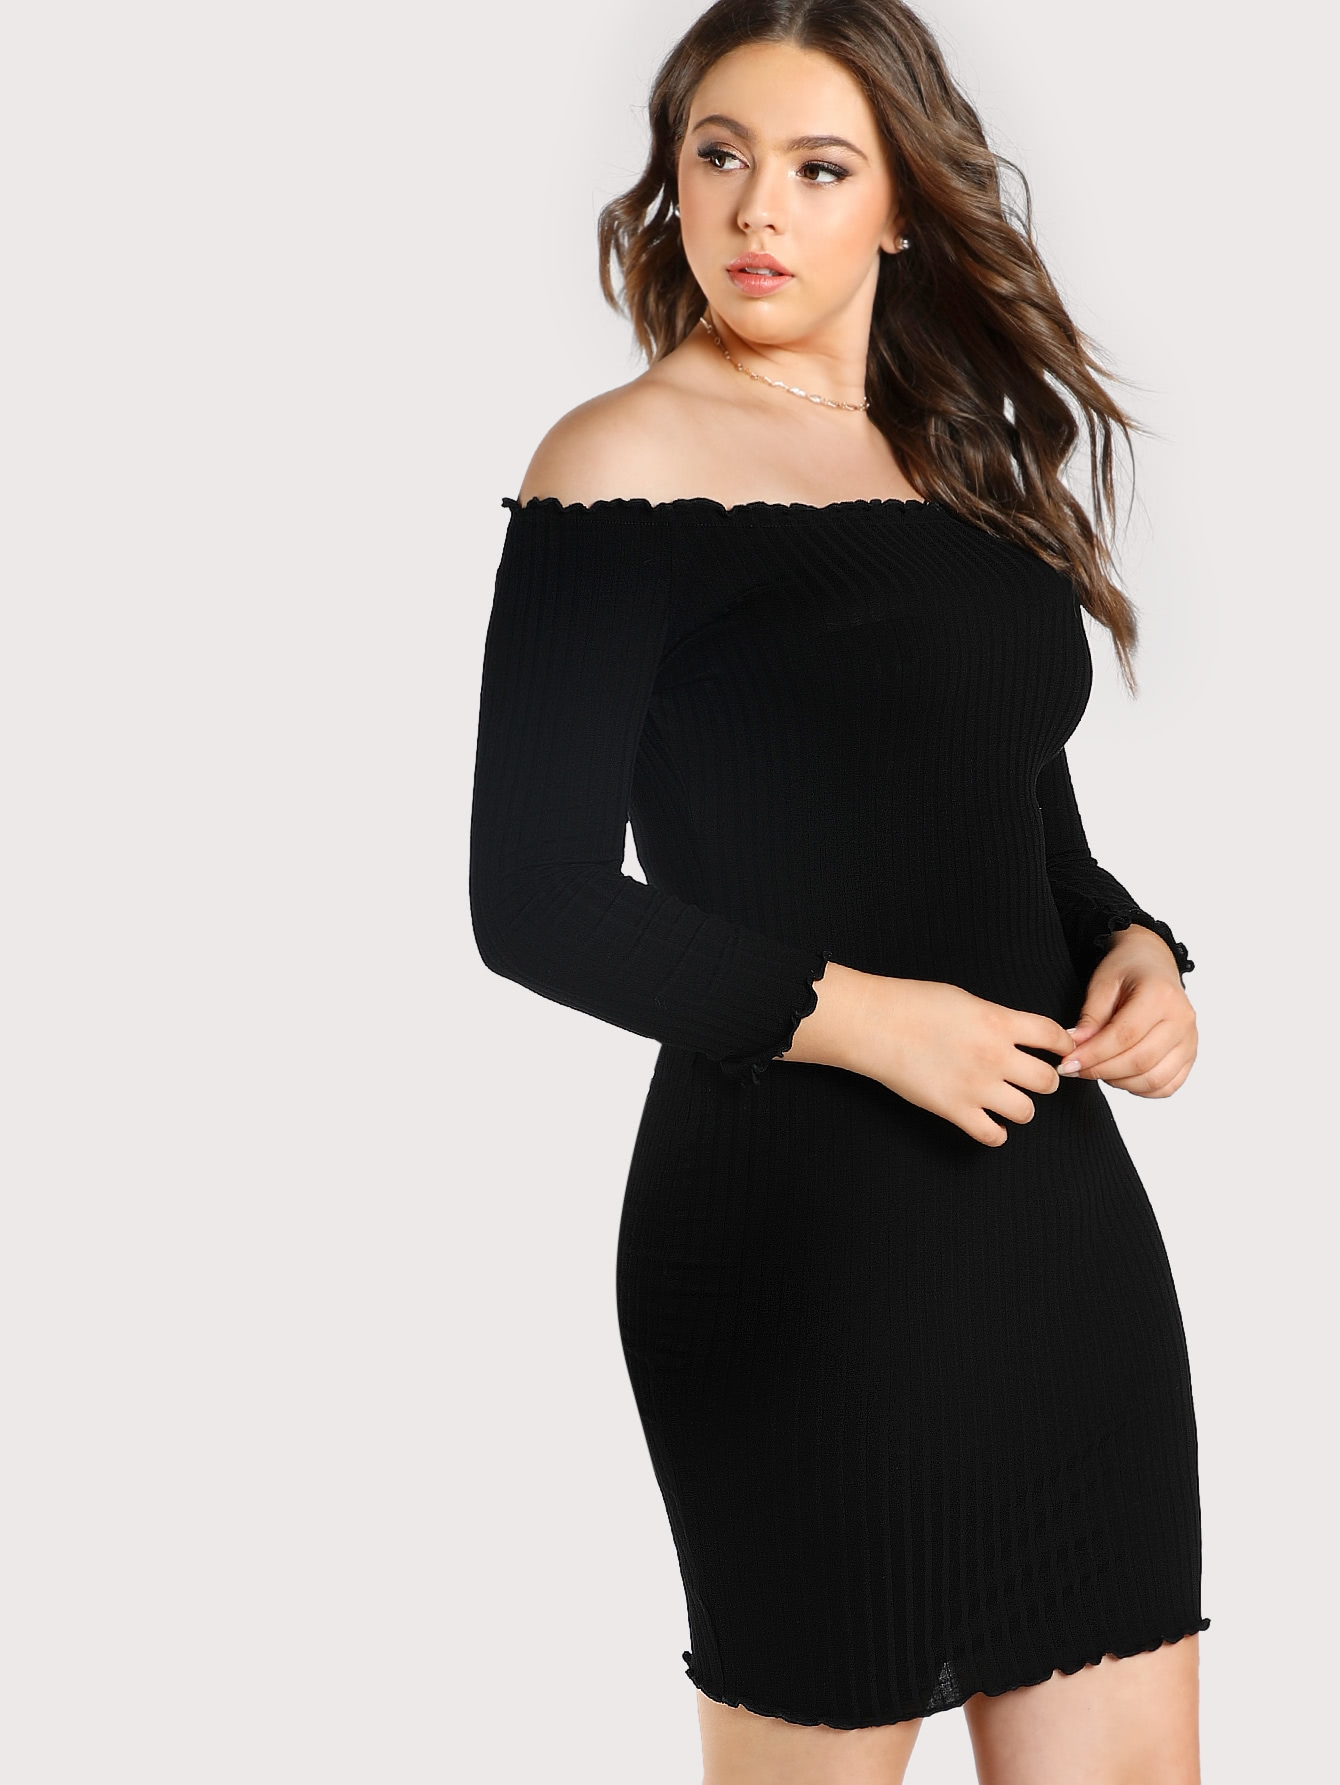 Rib Knit Off Shoulder Dress mmc-bld1398-blk